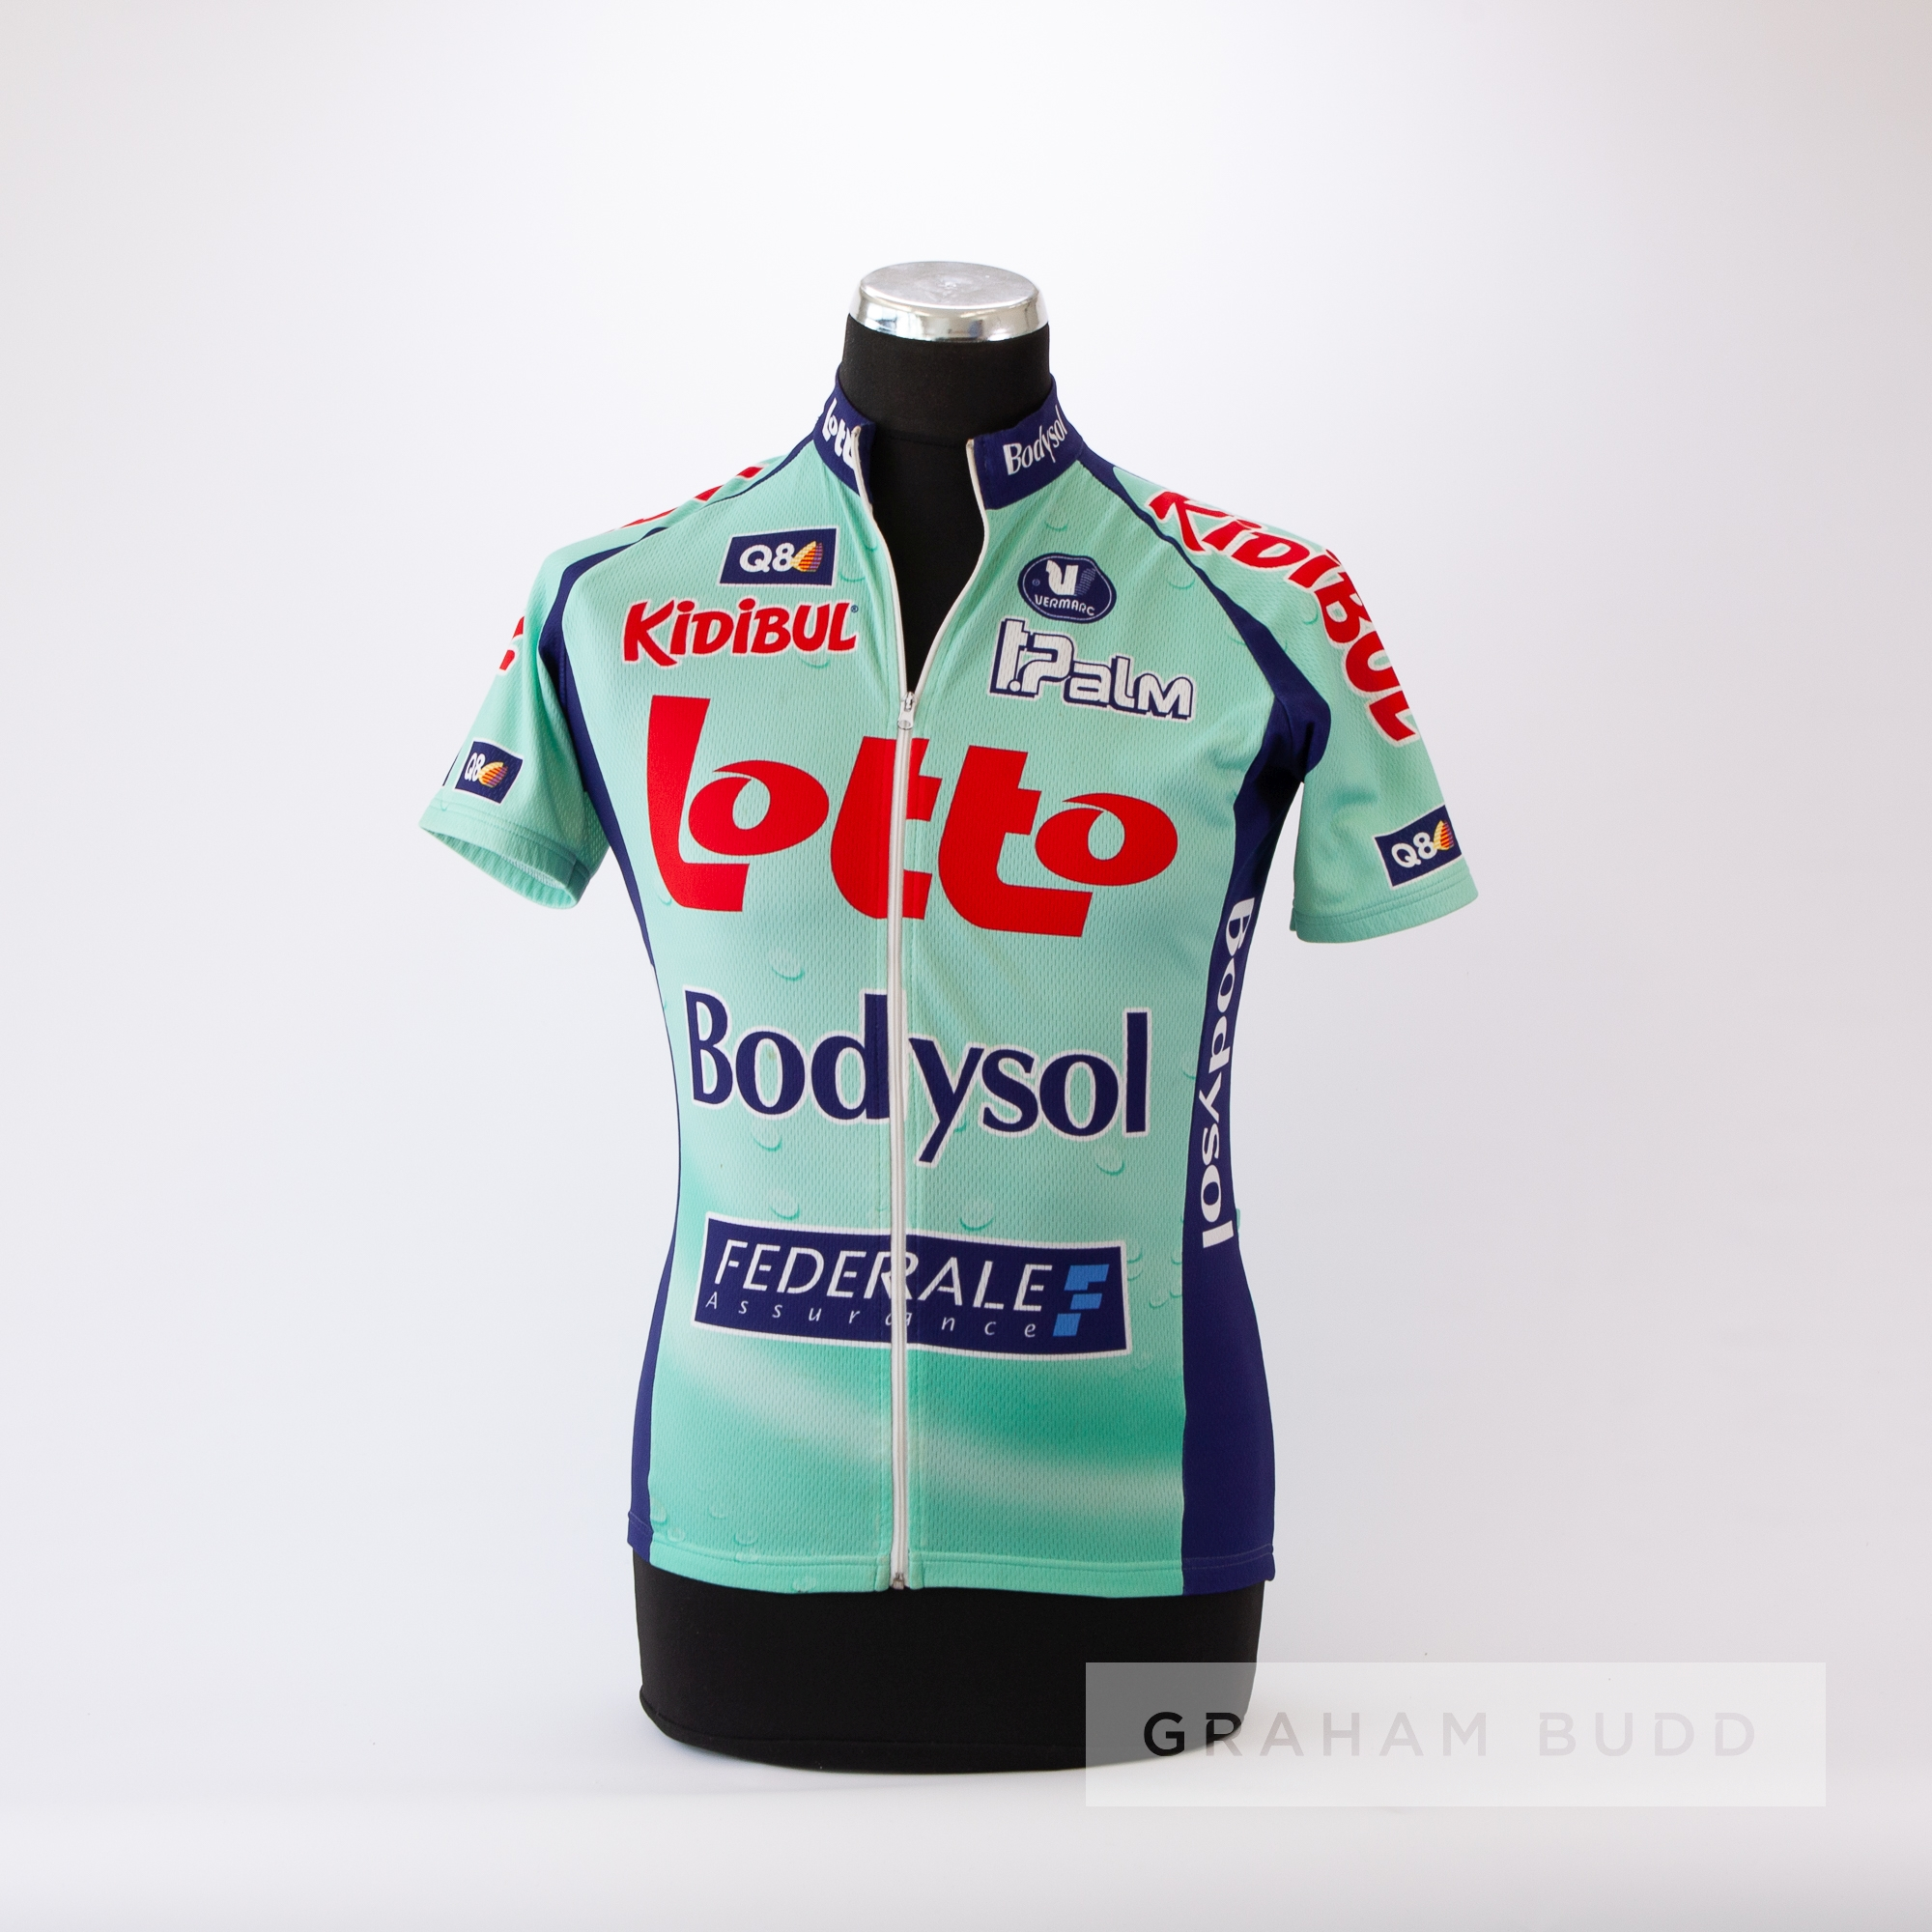 2009 aqua and navy Belgium Lotto Bodysol Cycling team race jersey, scarce, polyester short-sleeved - Image 3 of 4